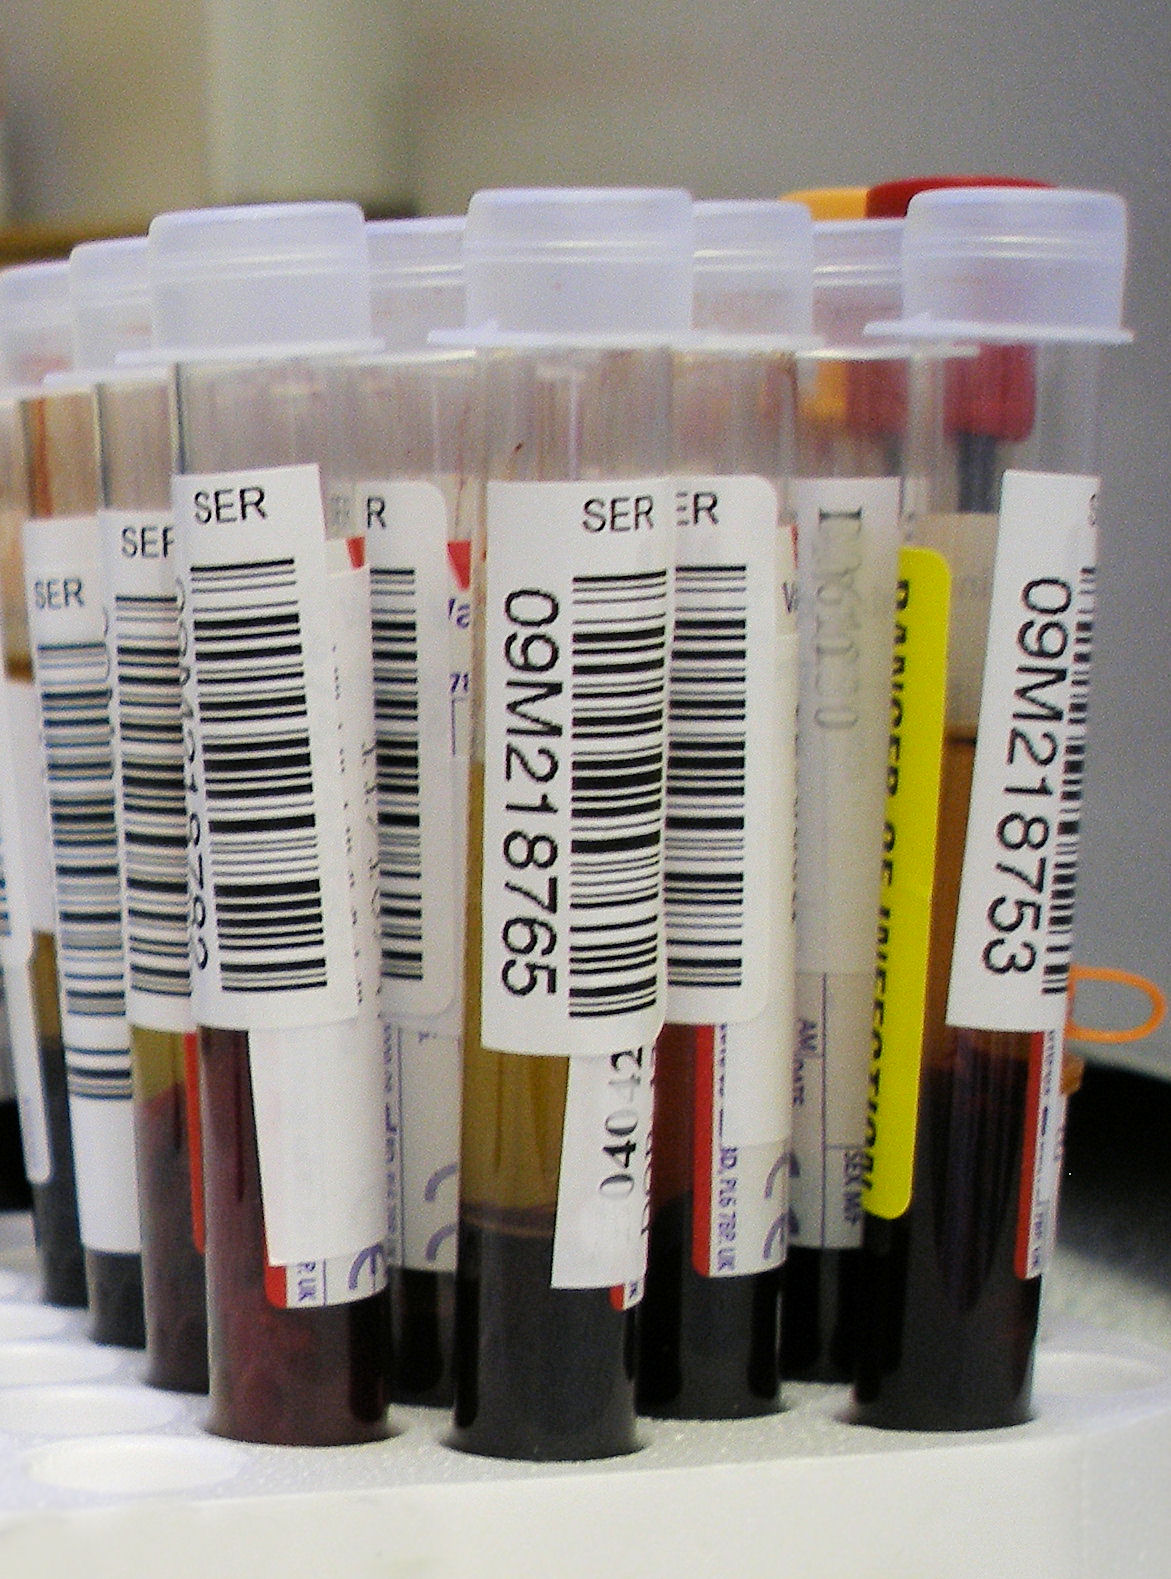 File:Blood test.jpg - Wikimedia Commons